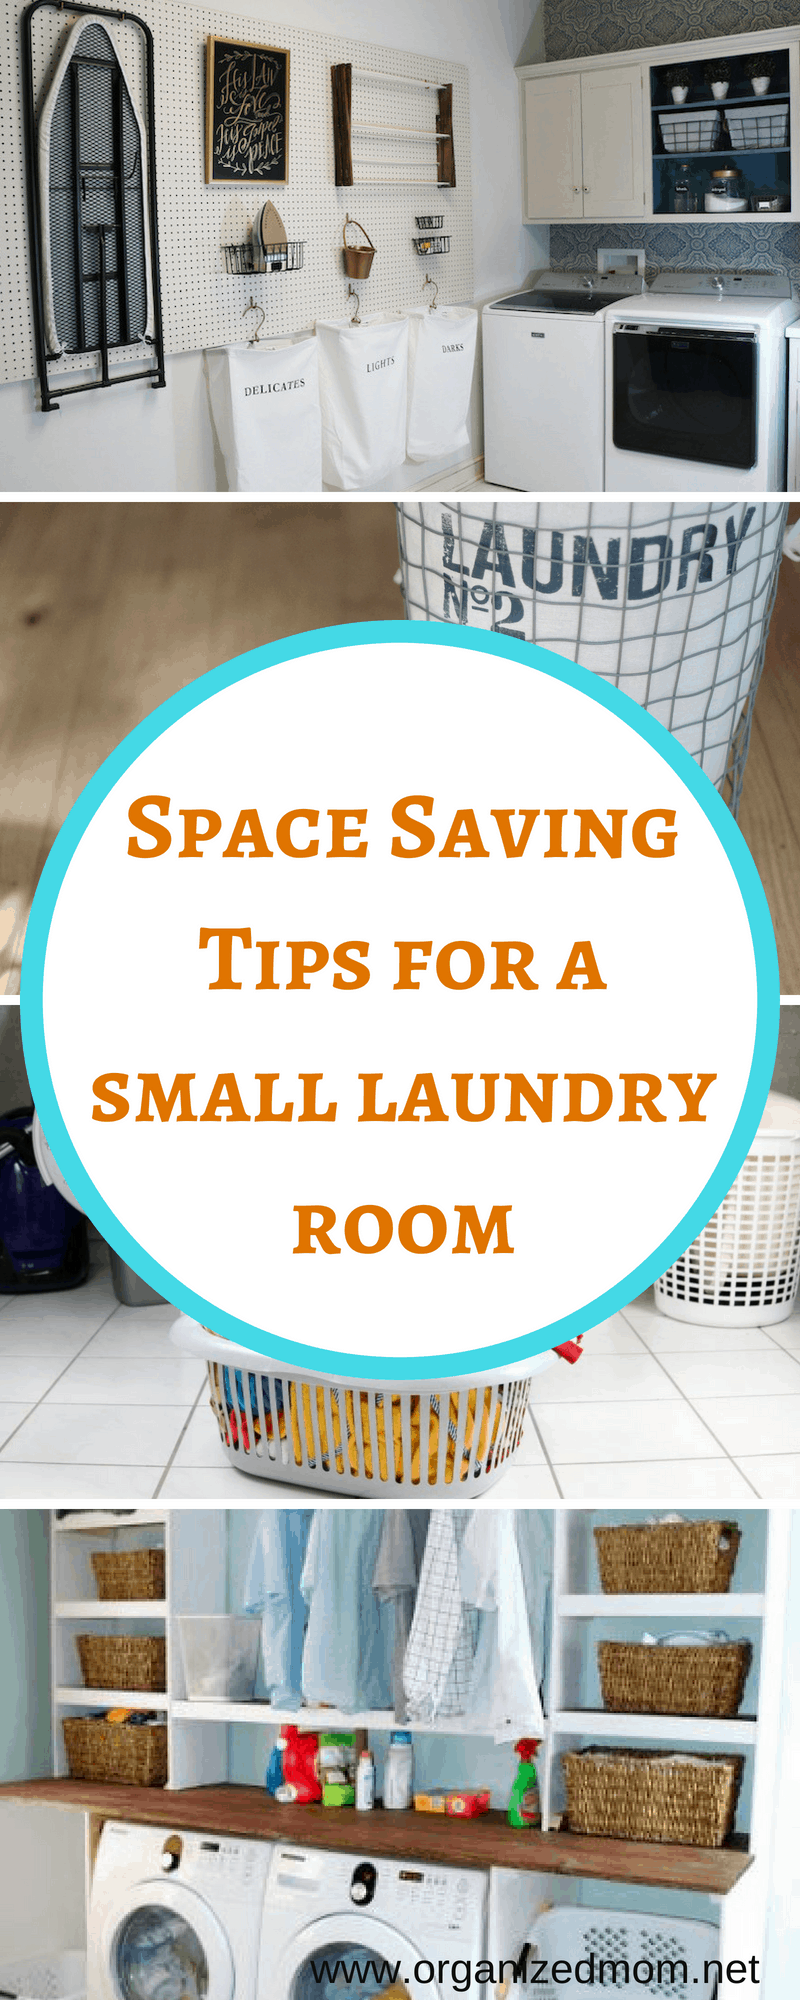 Space Saving Tips For A Small Laundry Room The Organized Mom